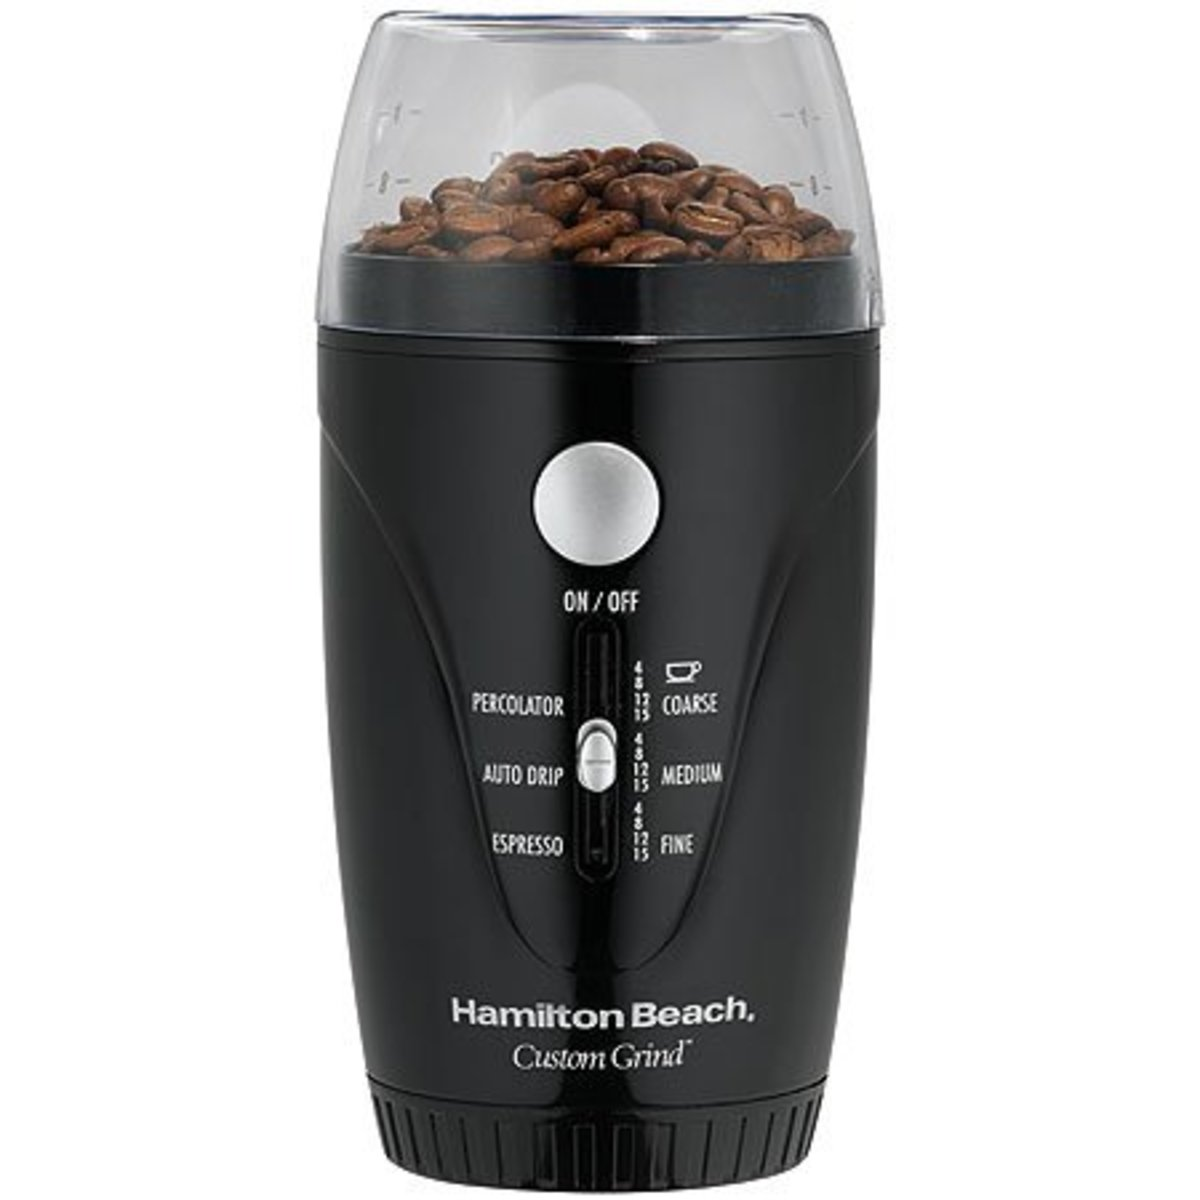 •Hands-Free - Press Button and Let Go •Auto Shutoff •Fineness Control •Rich and Robust Flavor •Retractable Cord